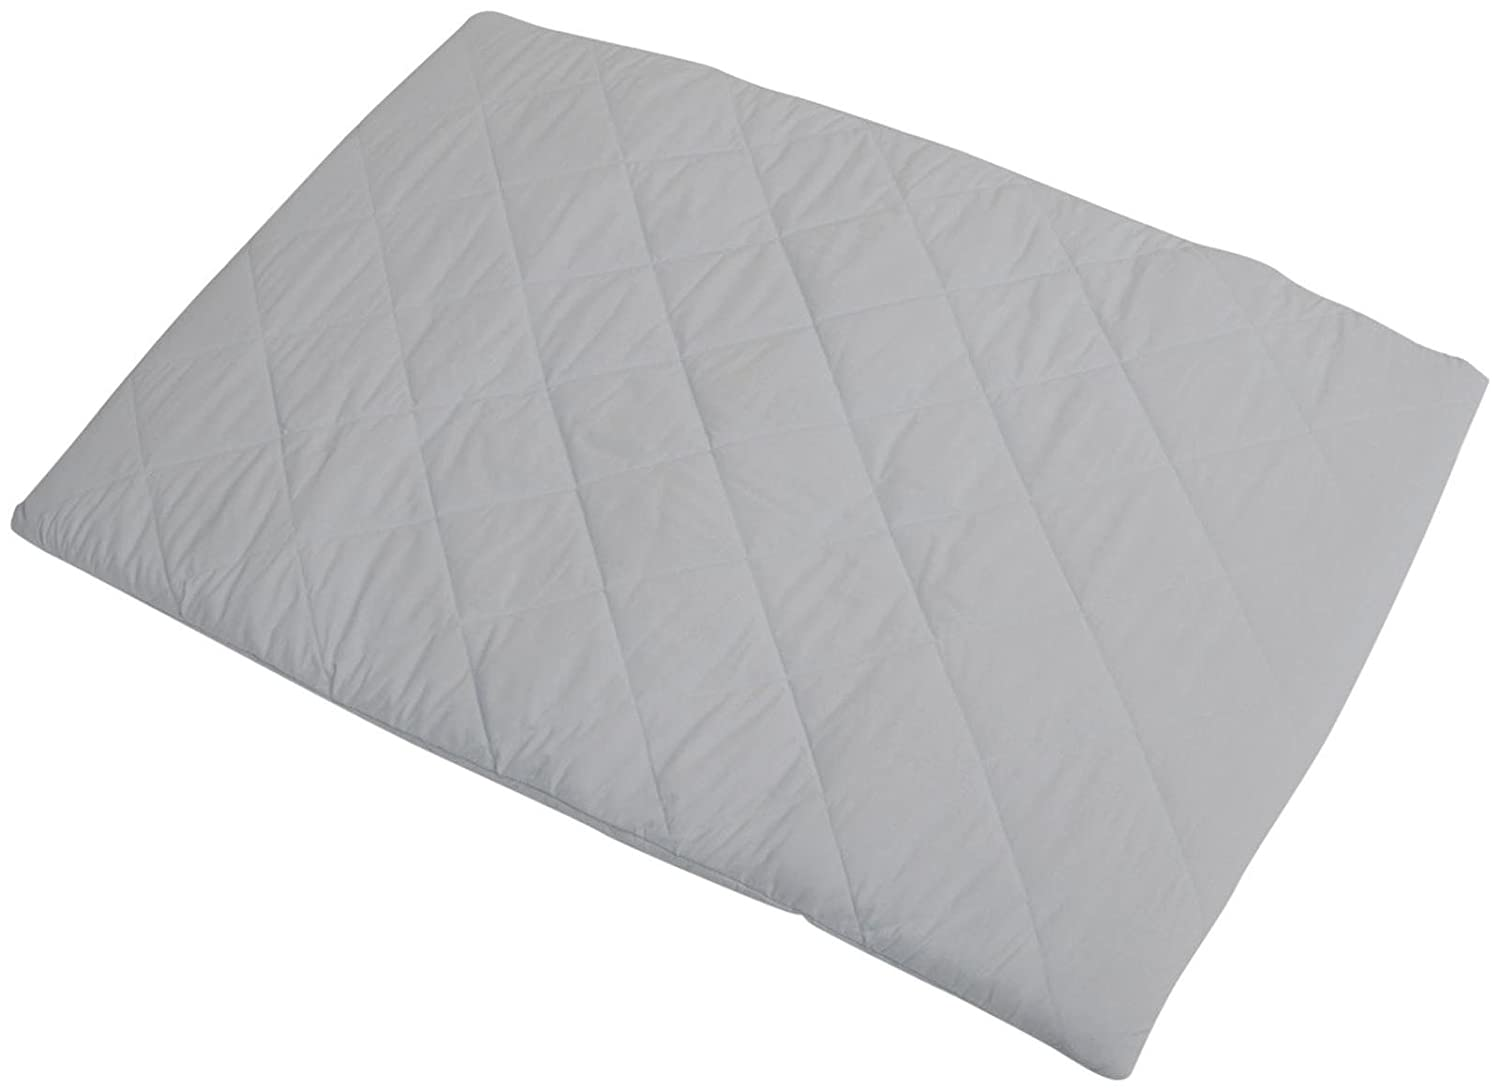 Graco Pack 'n Play Quilted Playard Sheet